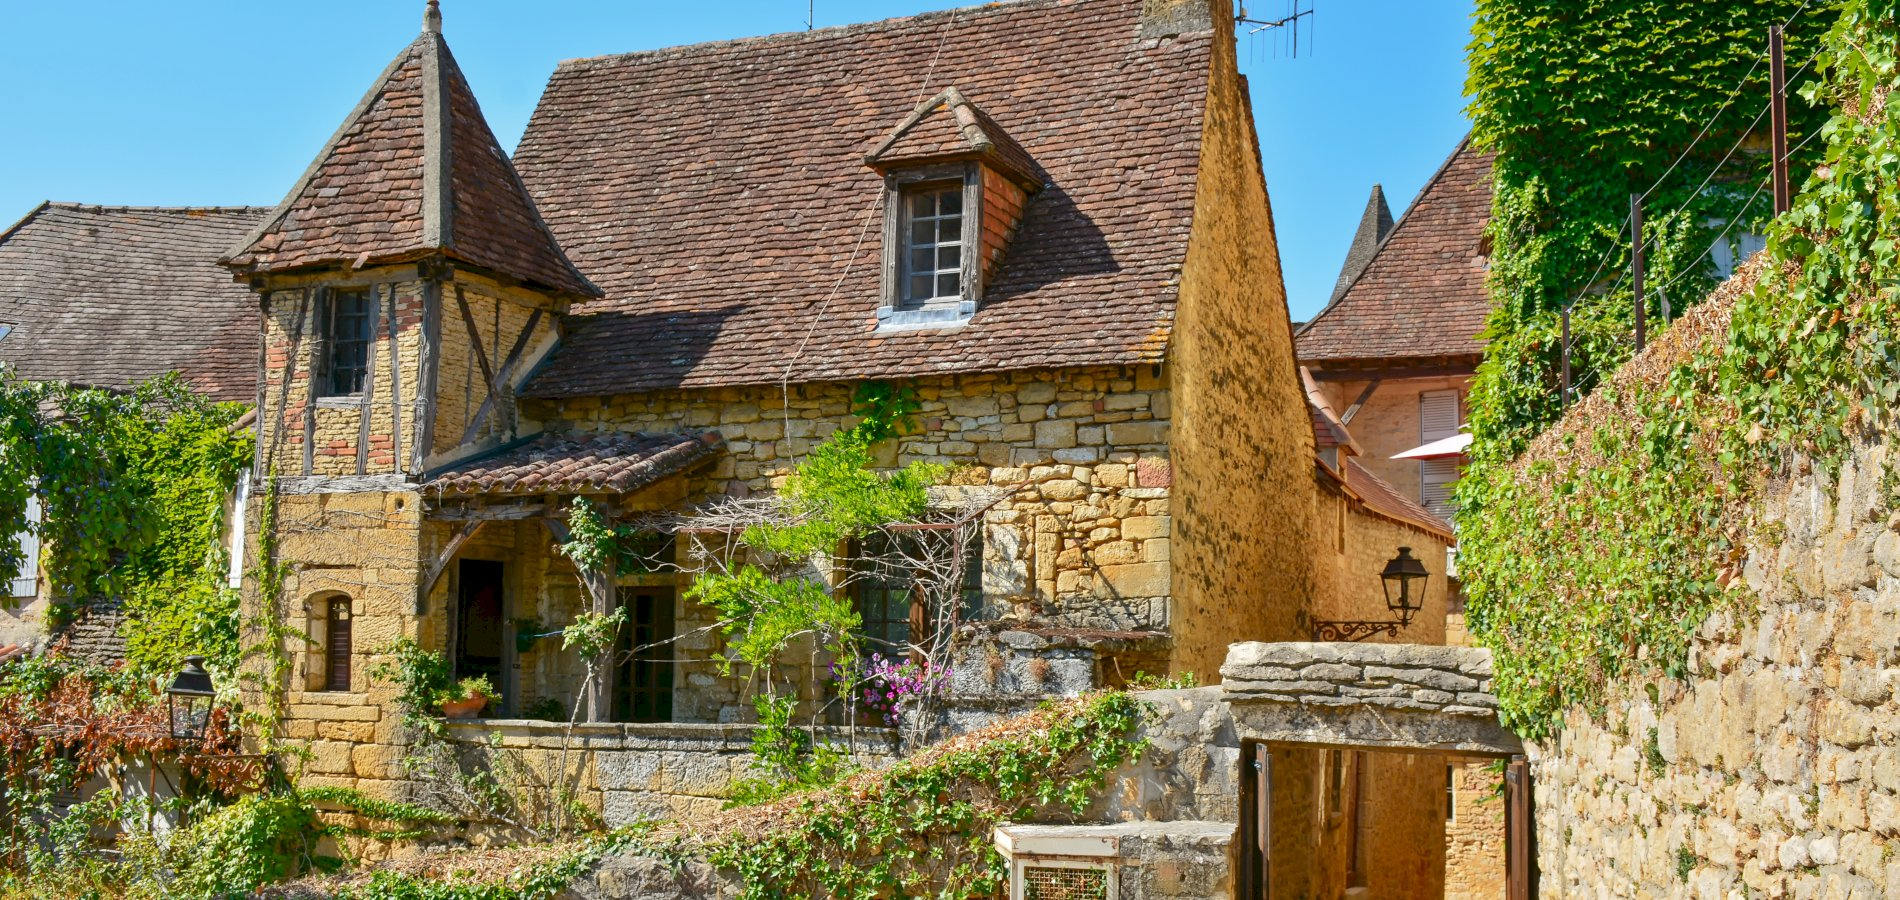 Ophorus Tours - 5 Days Dordogne Private Travel Package - 3* Hotel Option